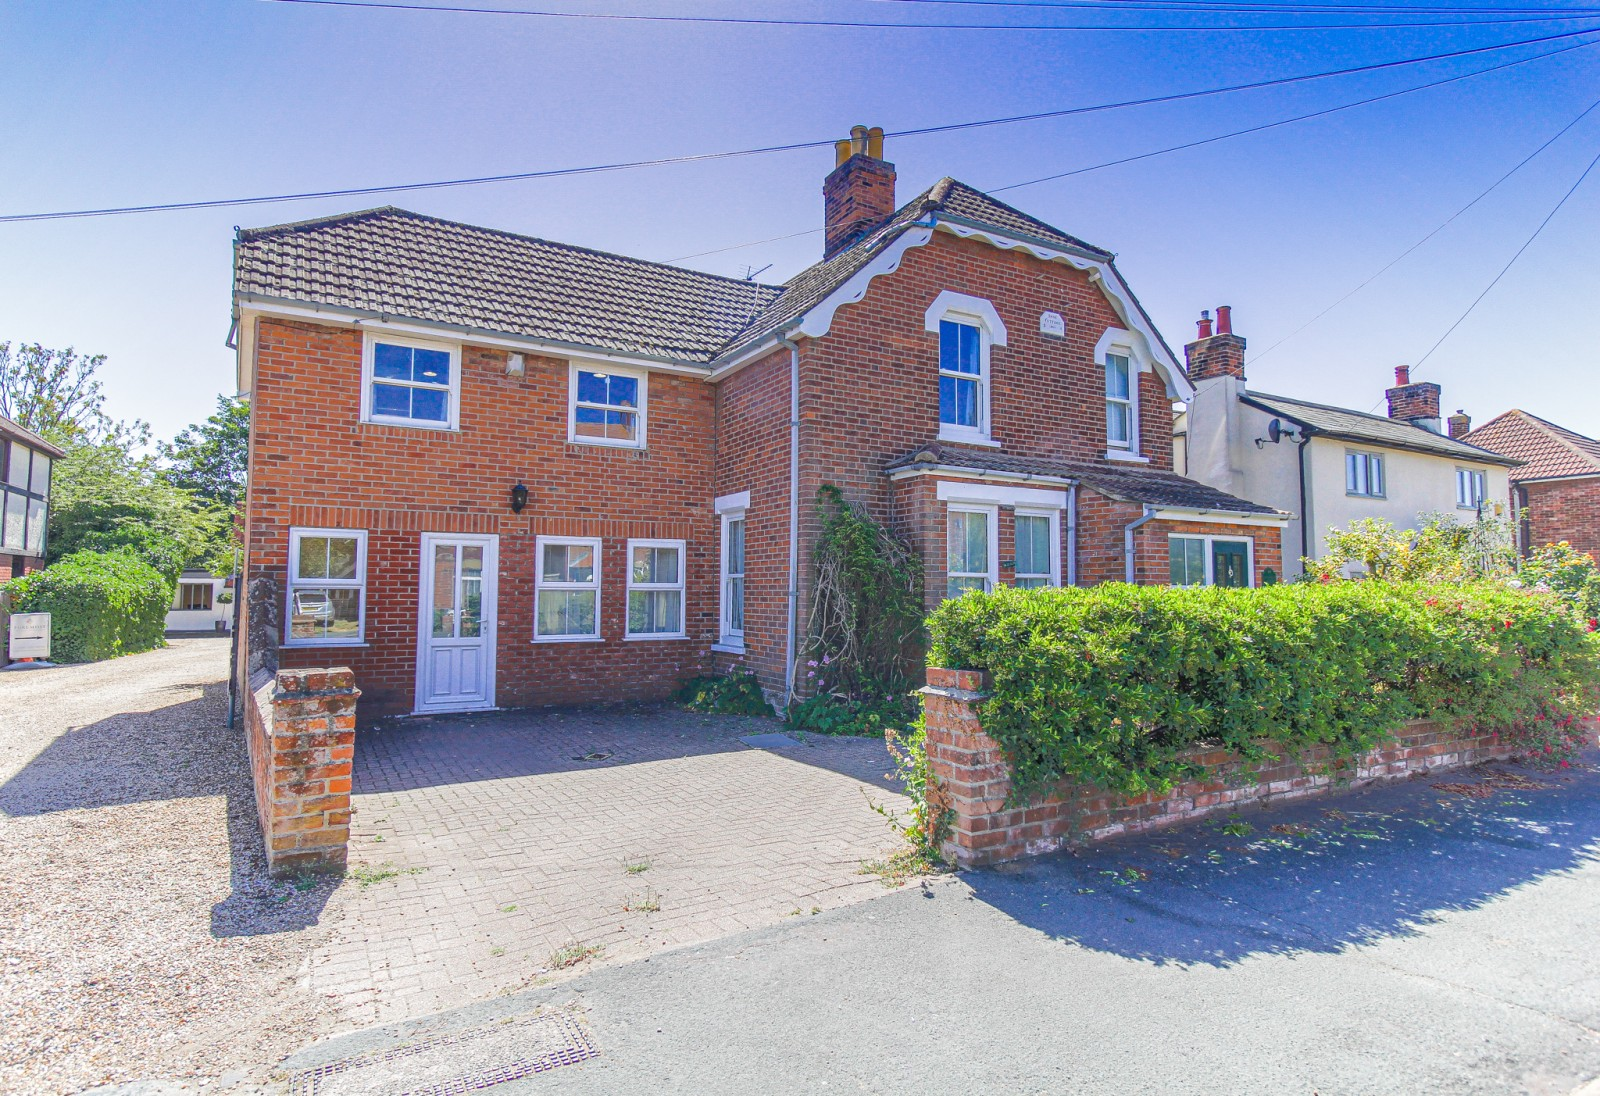 London Road, Stanway, Colchester, Essex, CO3